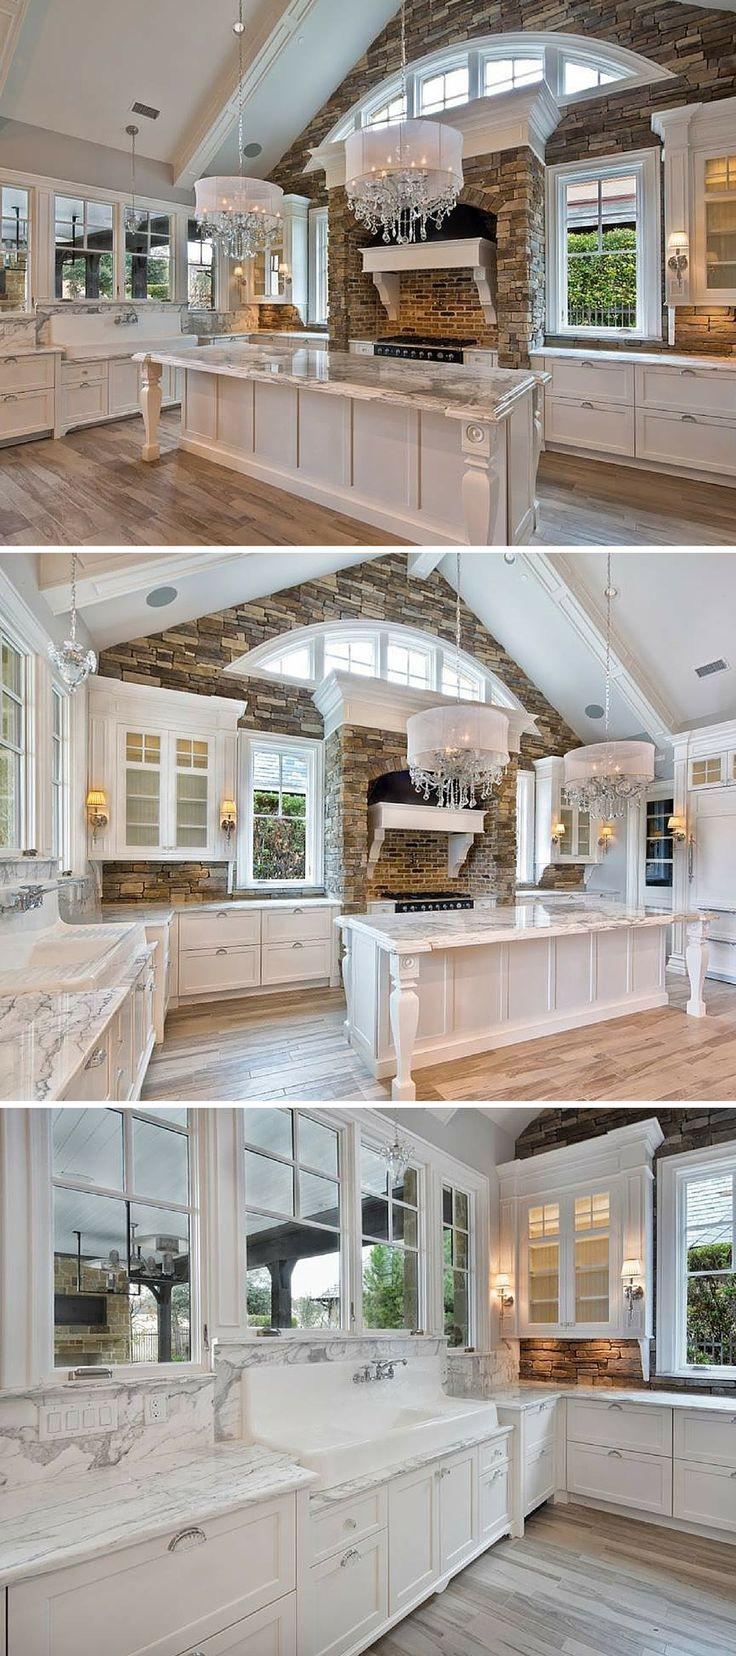 Wood-Mode kitchen with white cabinets and marble countertops http://www.CabinetsAndDesigns.net/products/wood-mode/